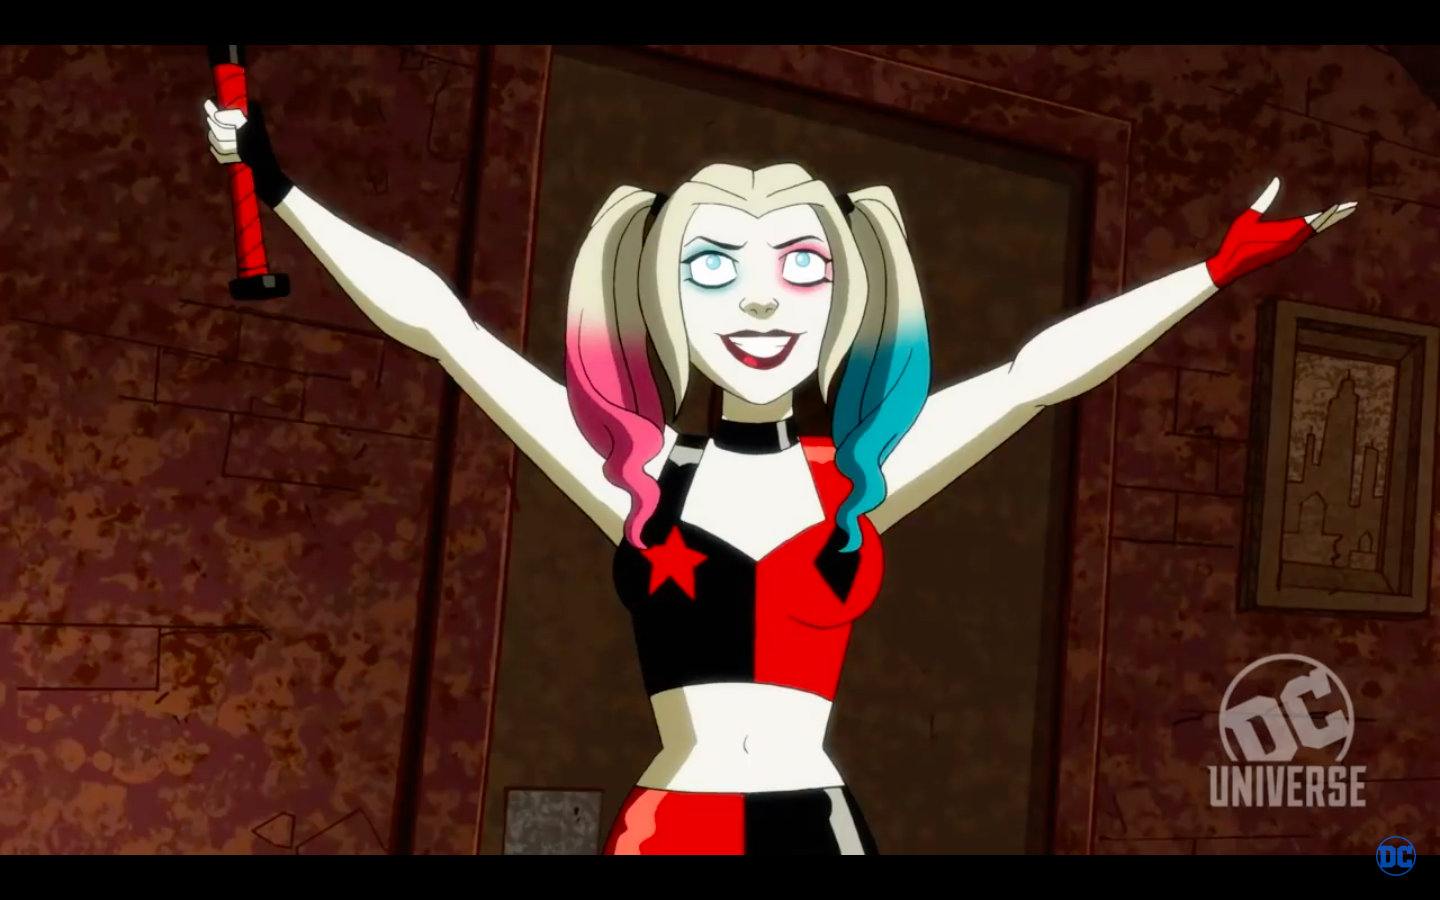 DC Universe's 'Harley Quinn' is Unquestionably Not For Kids